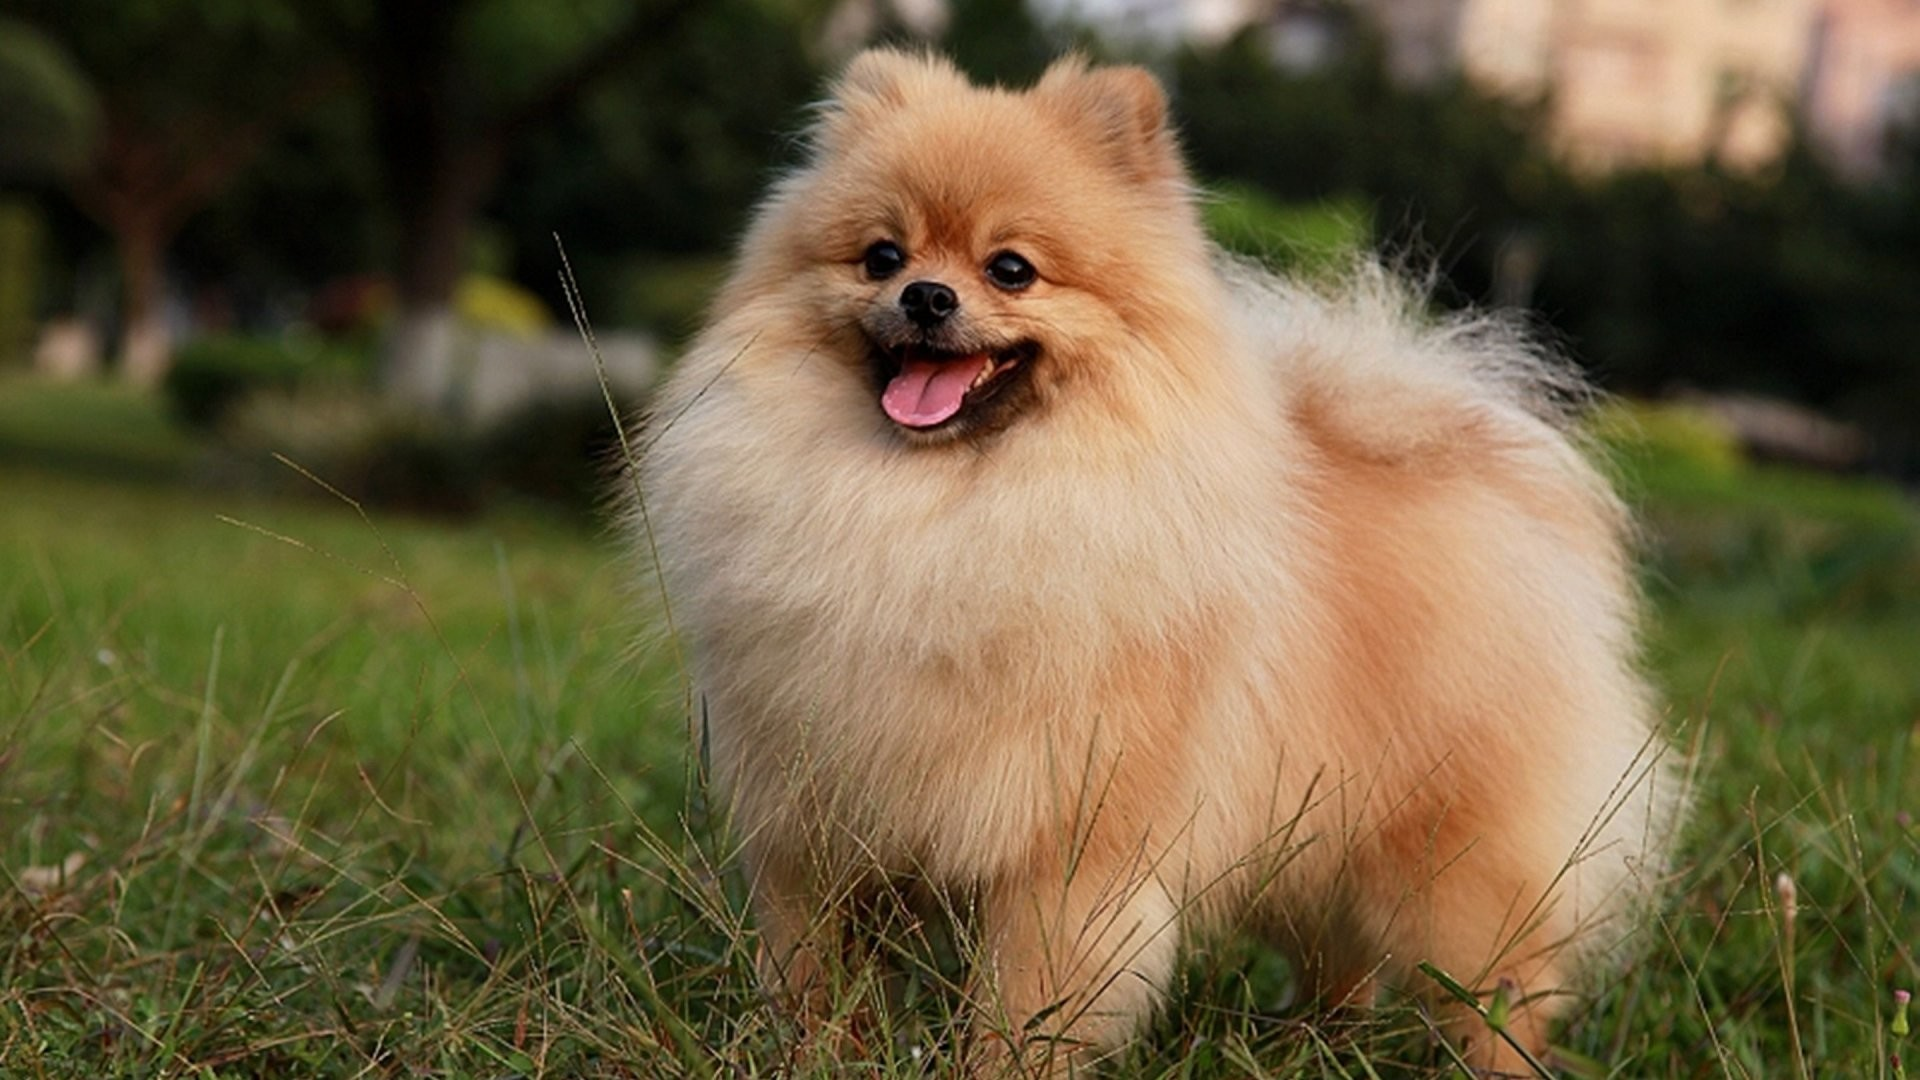 pomeranian dog breed information and pictures - HD1600×900